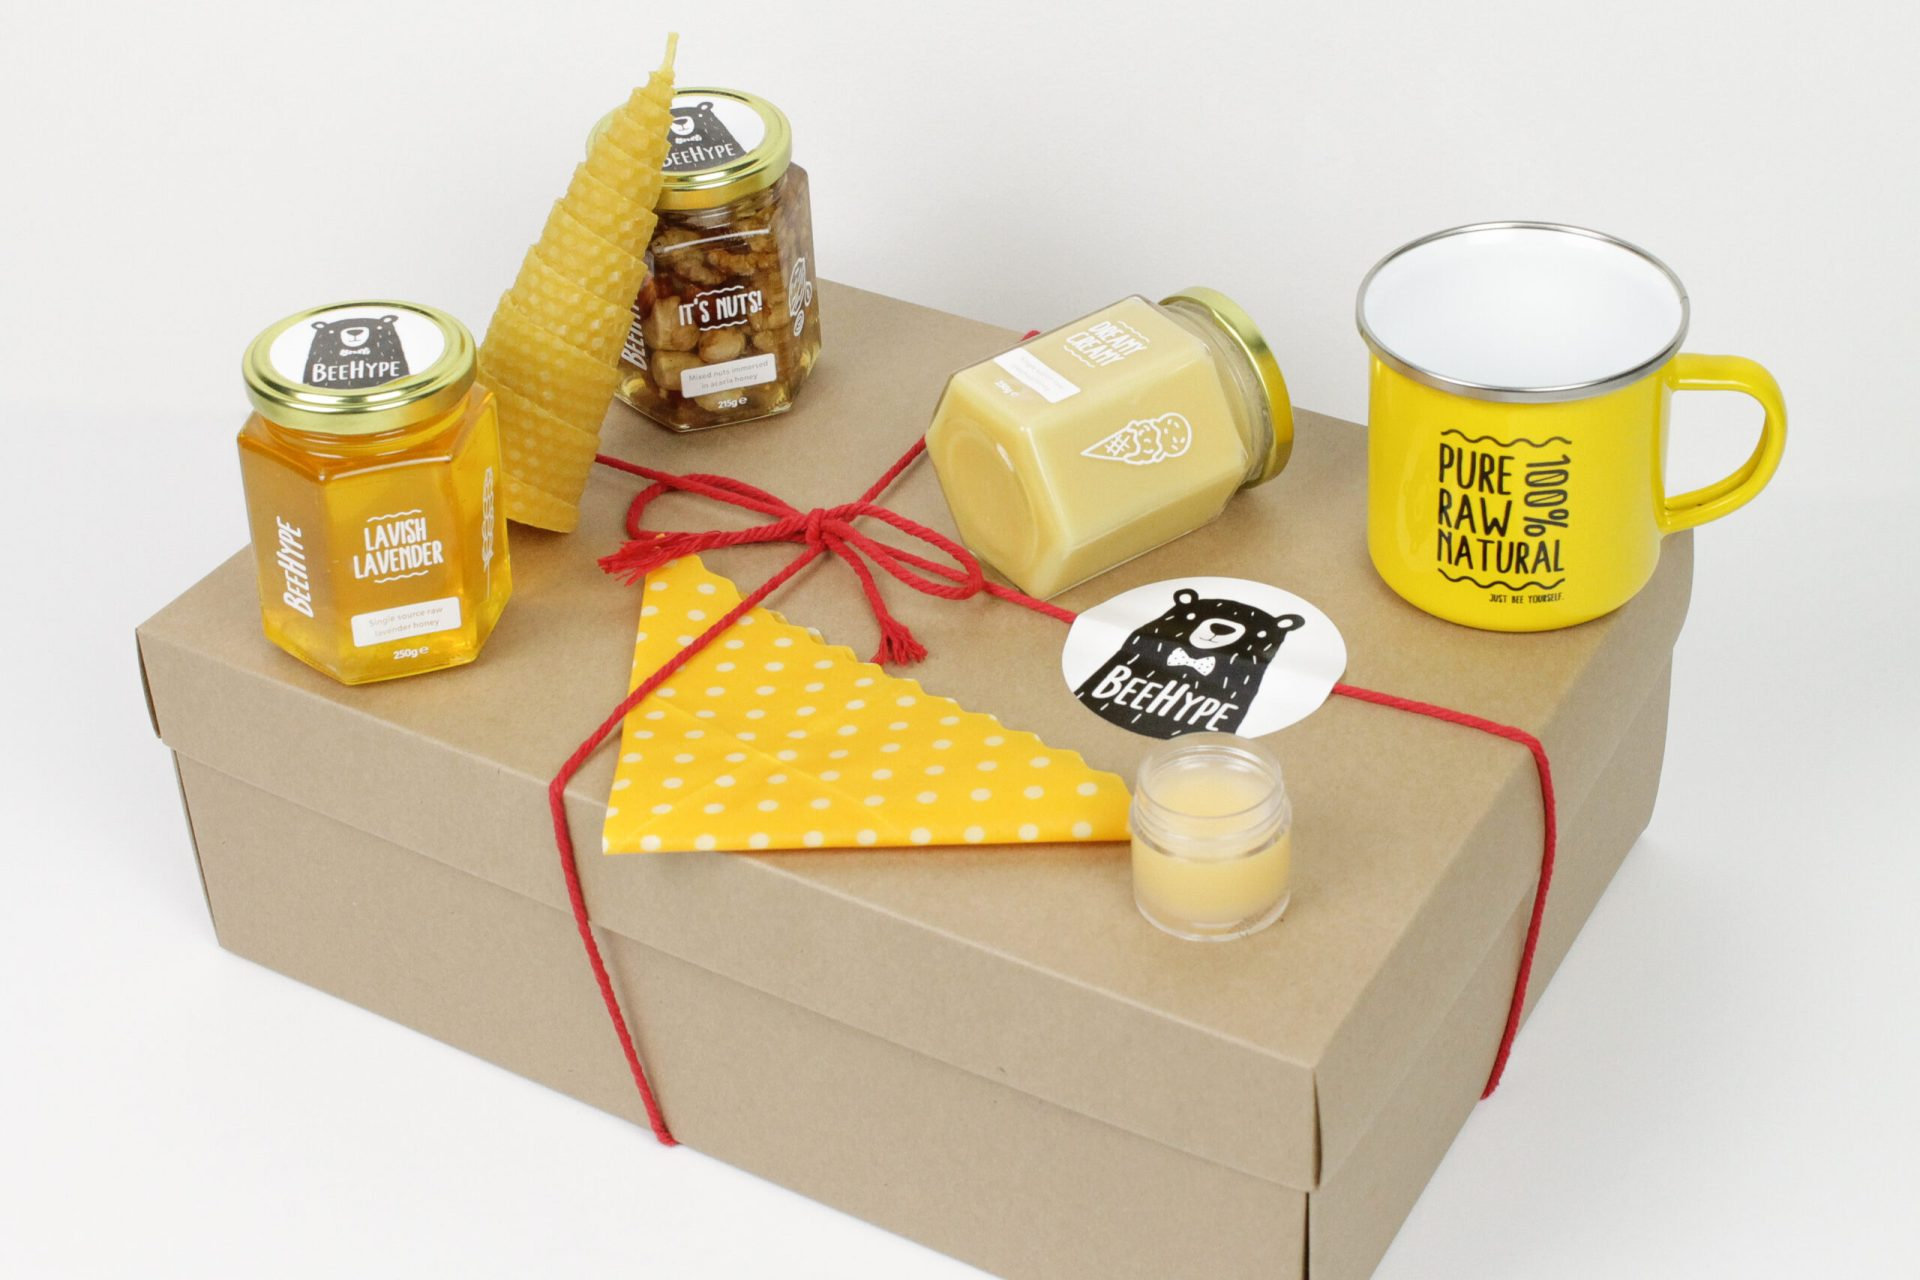 Eco friendly gift BeeHype Honey lover hamper 3 jars of natural honey and goodies from the hive